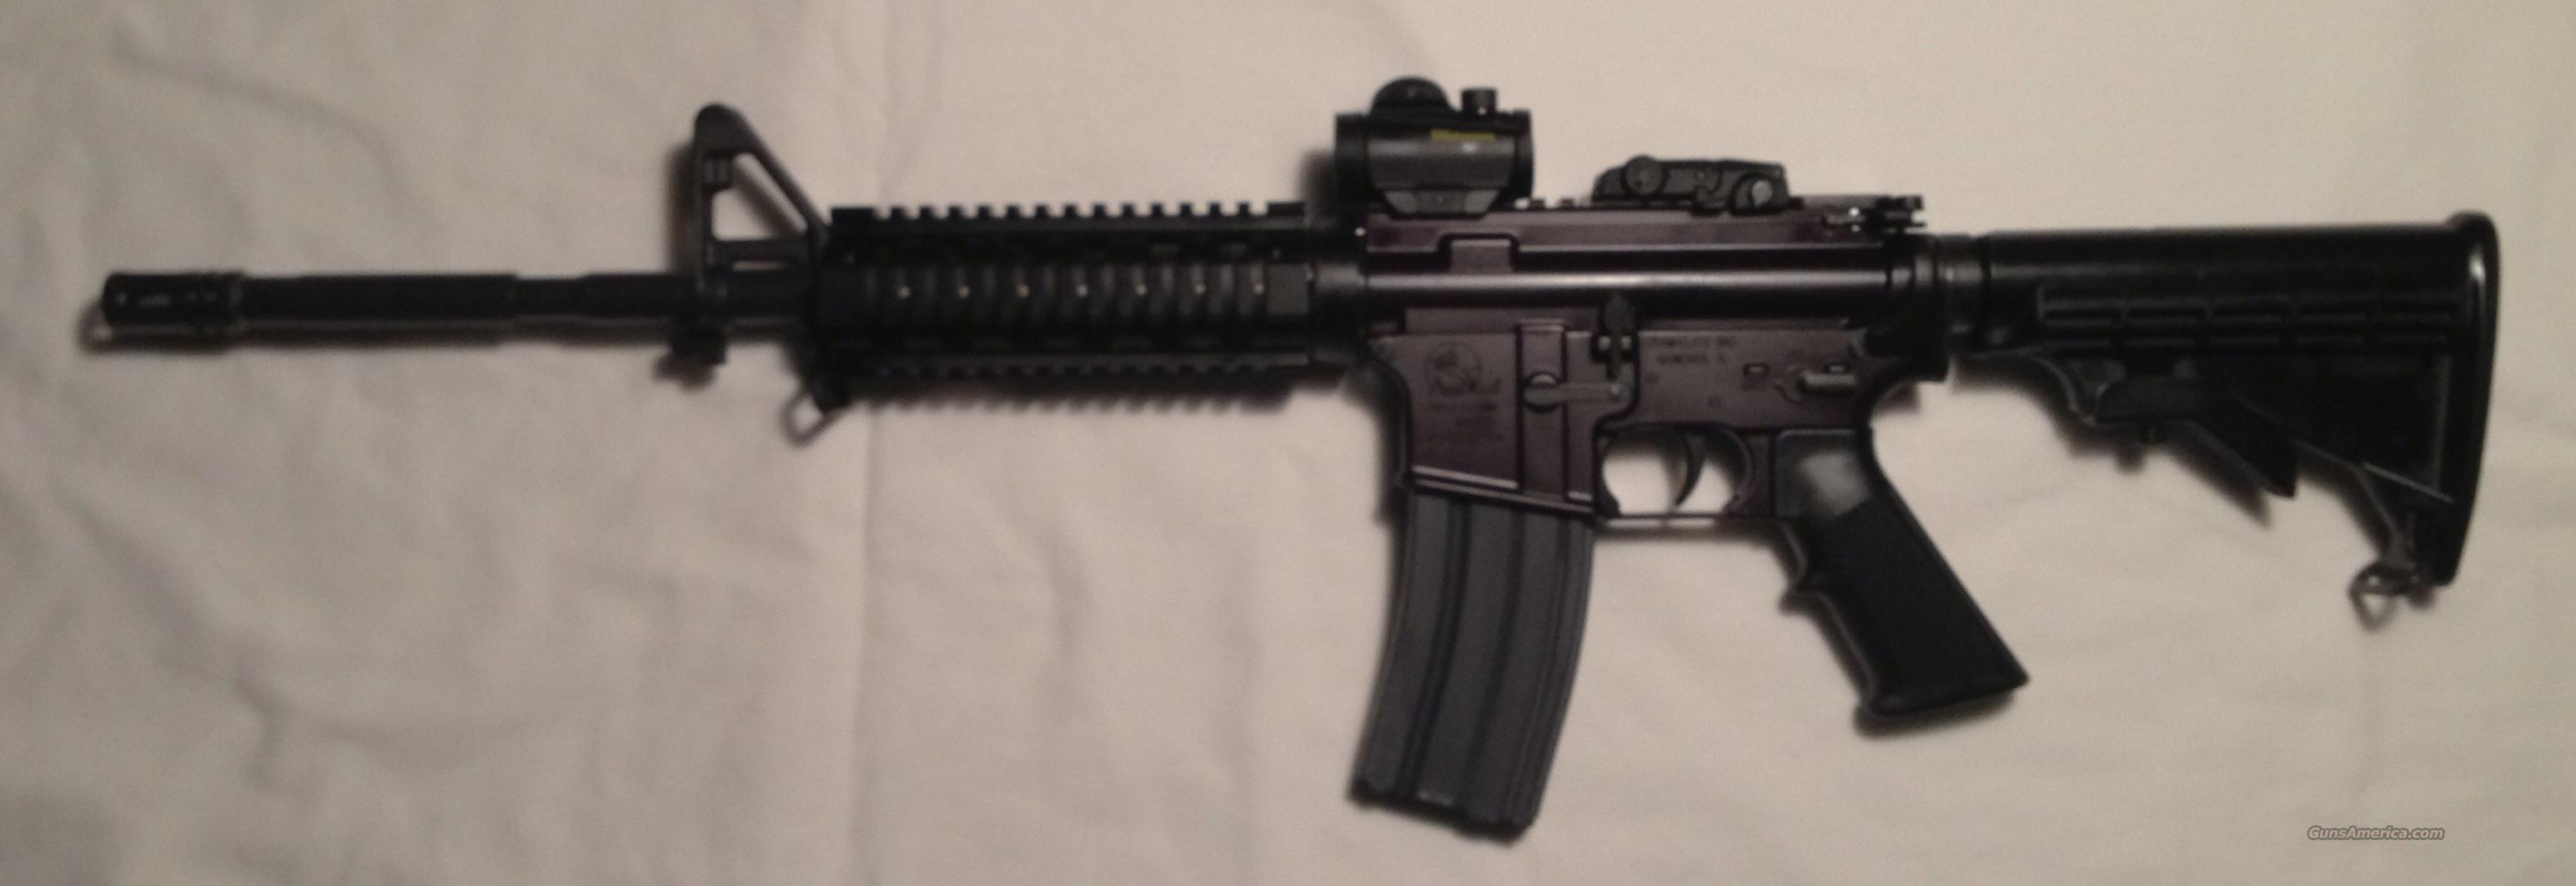 Tired of Clones!  NIB Armalite M15A4 LE Carbine + Quad rail forend + Bushnell Red Dot + 3 30 round mags + Backup sight  Guns > Rifles > Armalite Rifles > Complete Rifles